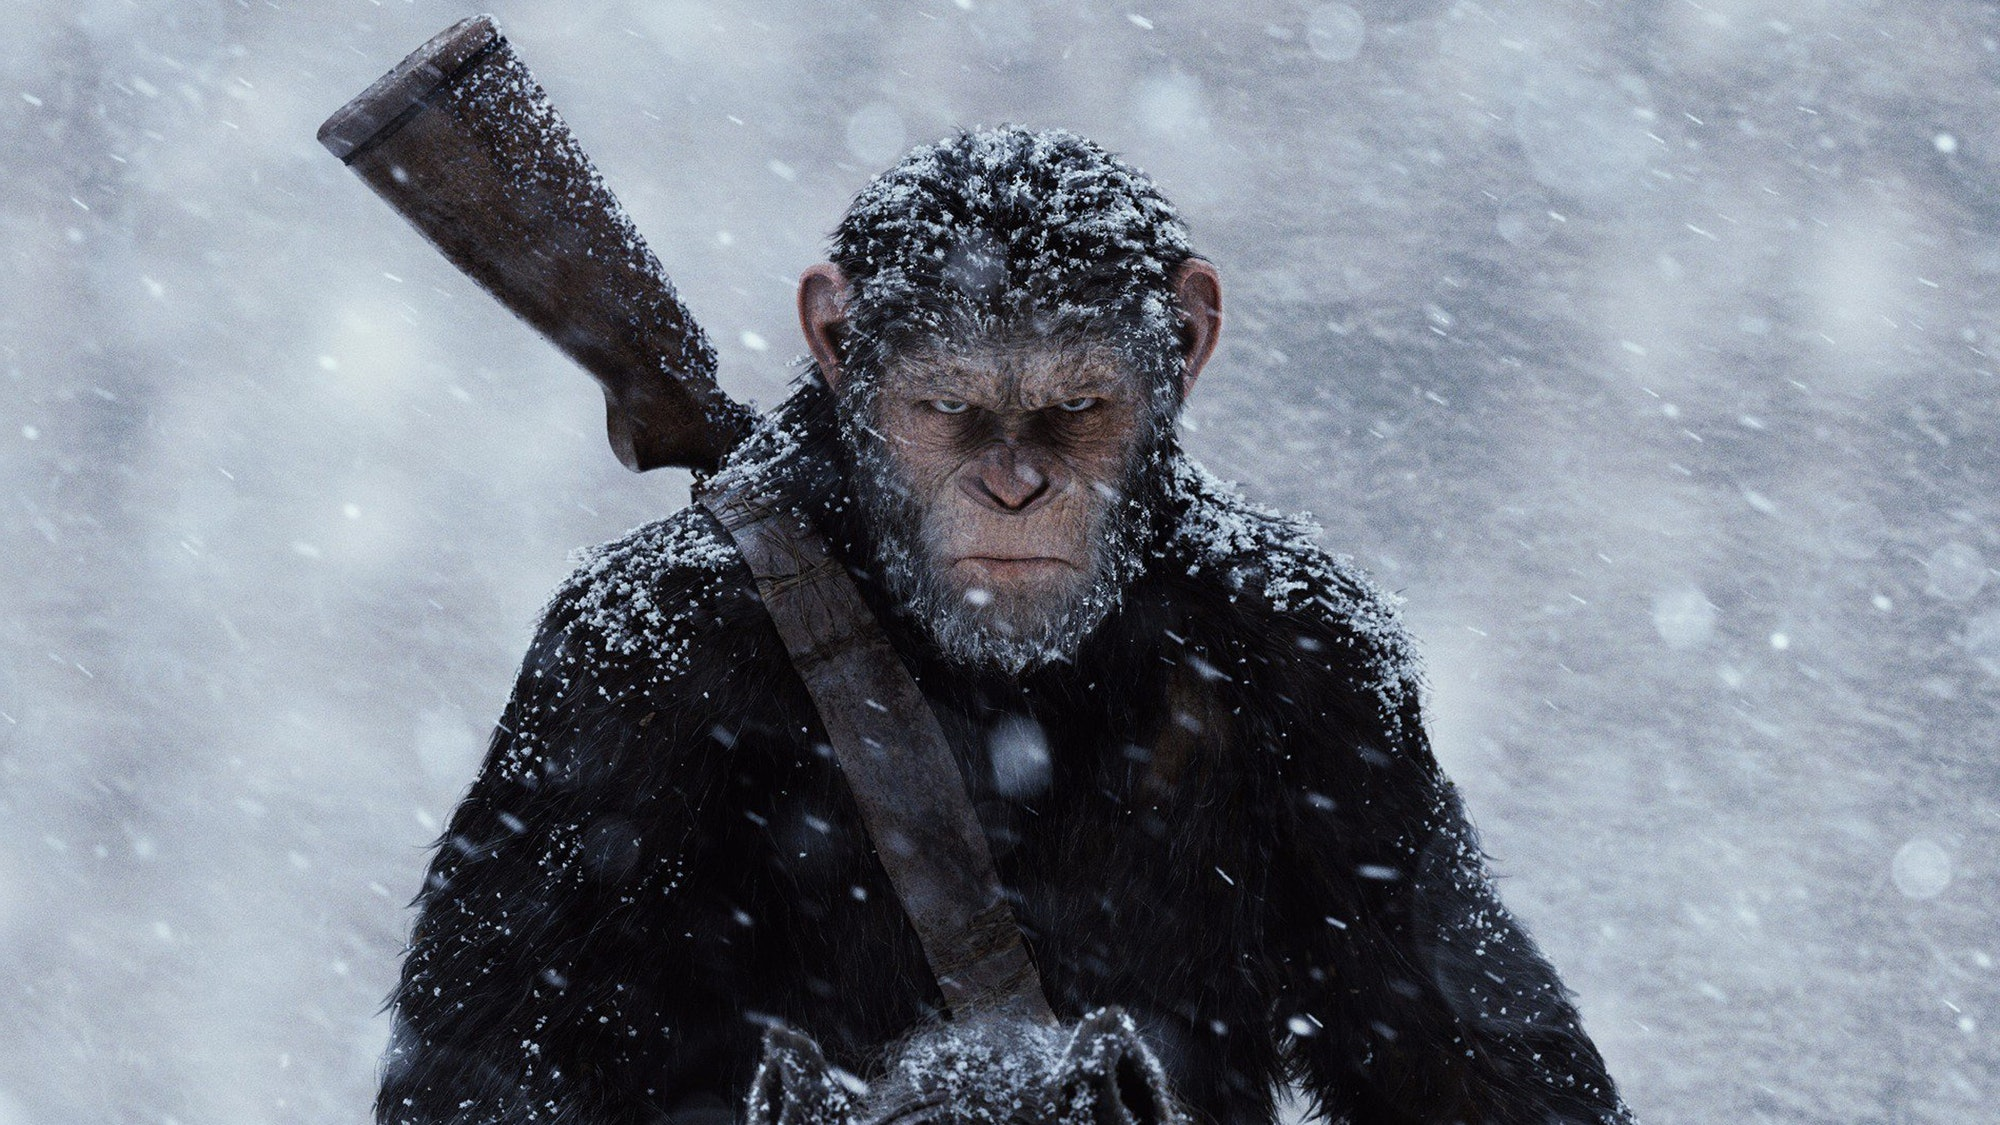 War for the planet of the apes fighting battle caesar andy serkis